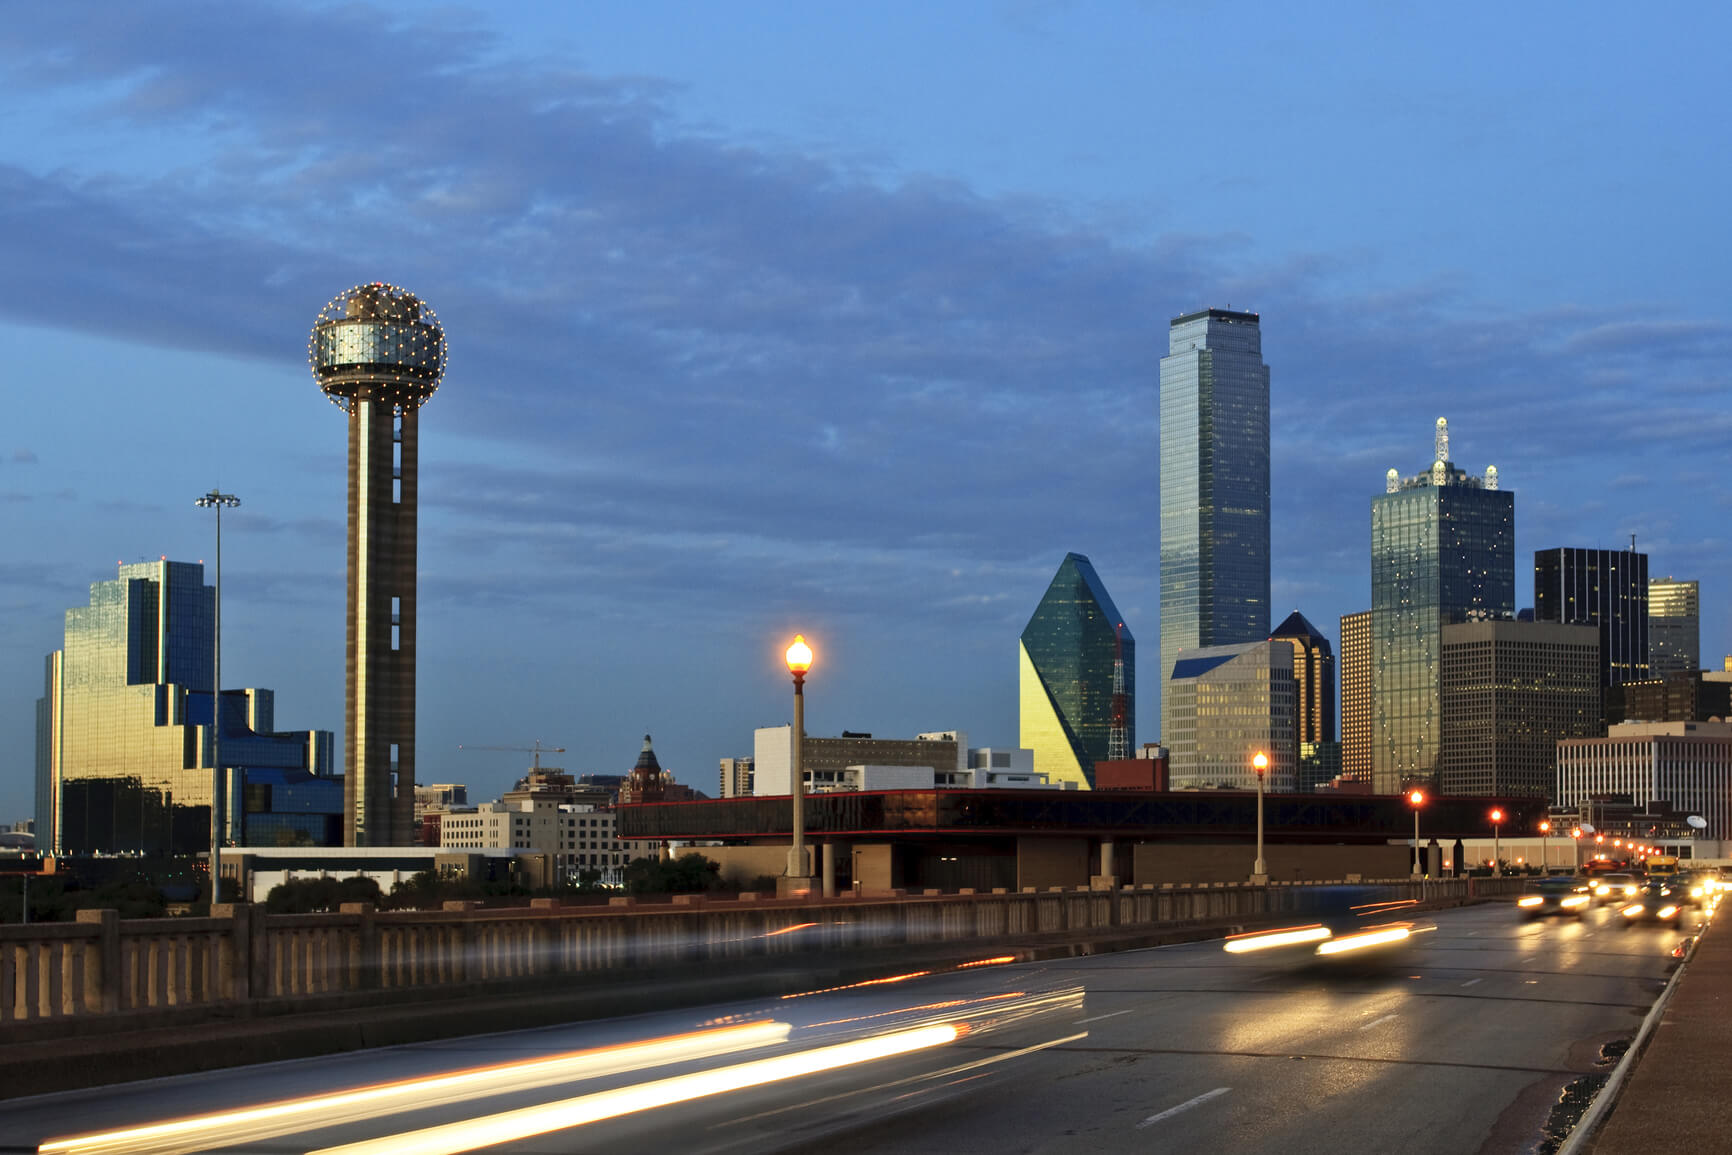 🚨 PRICE DROP 🚨 Non-stop from New York to Dallas, Texas (& vice versa) for only $74 roundtrip (Nov-Apr dates)